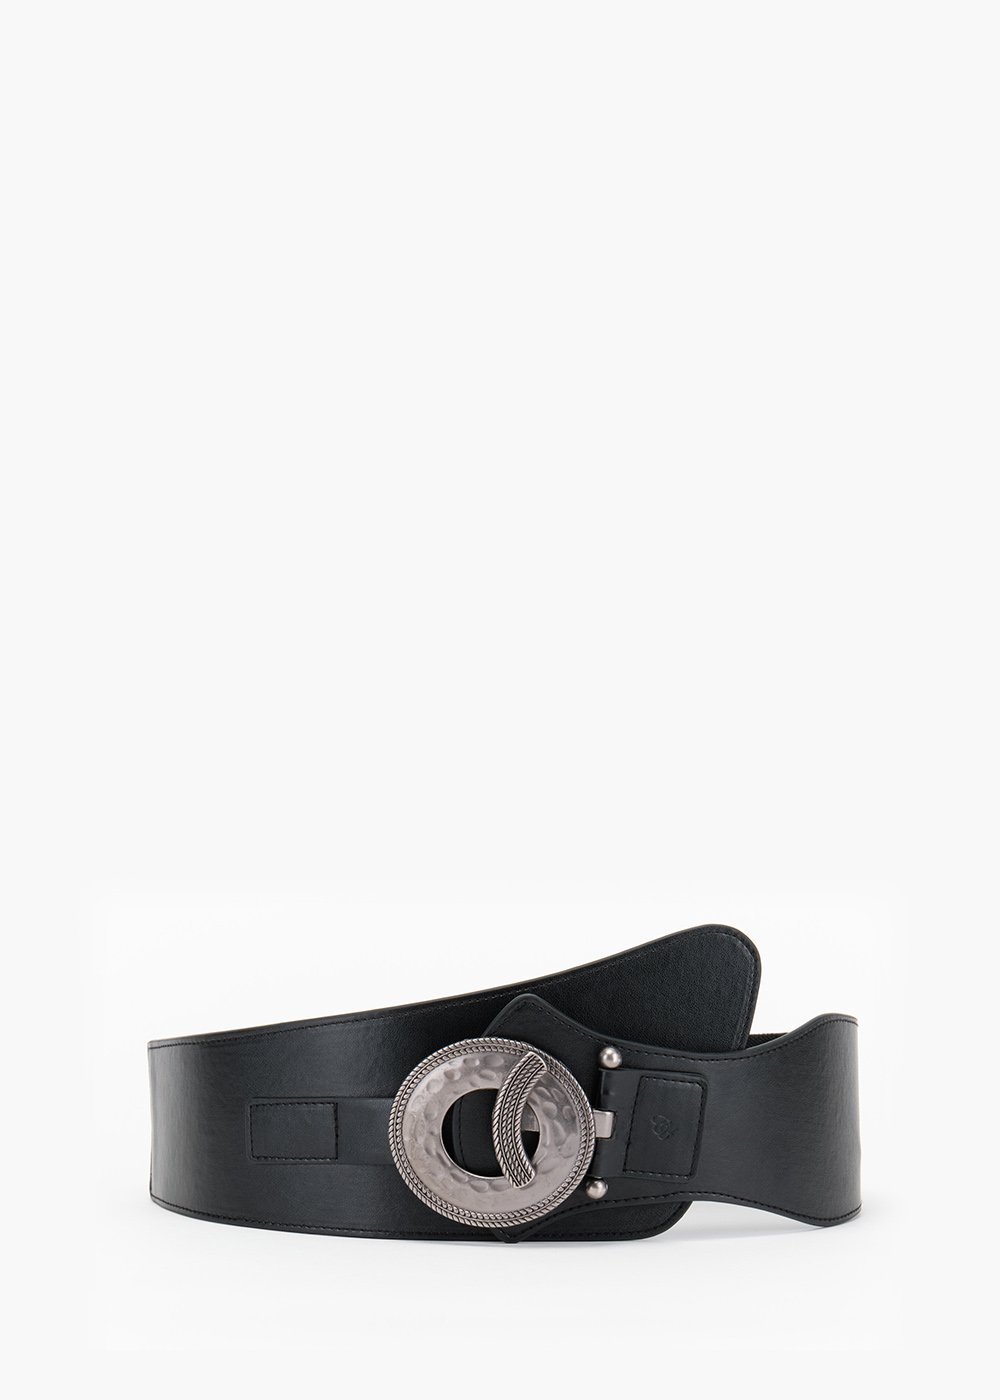 Cherly belt in eco leather with gun metal metallic closure - Black - Woman